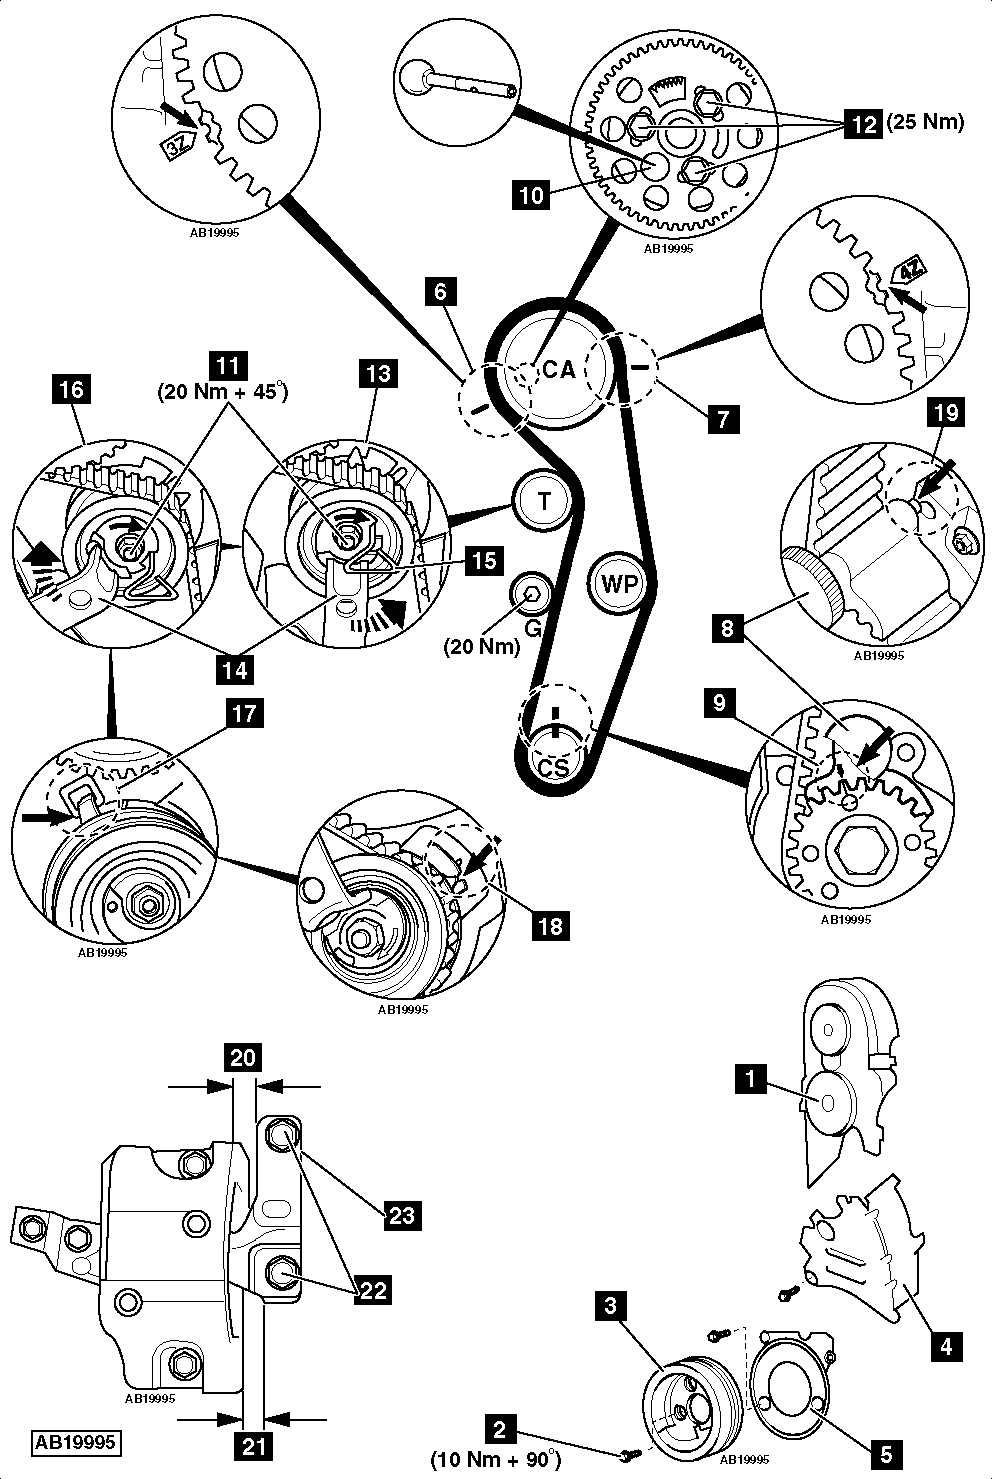 85 Ford 150 351 Alternator Wiring Diagram likewise Motorcycle Headlight With Single Spdt Relay moreover Vw Body Parts Diagram also 2wm1a Air Conditioner Low Pressure Service Port Located together with Mazda 3 Tail Light Diagram. on 2006 vw new beetle wiring diagram